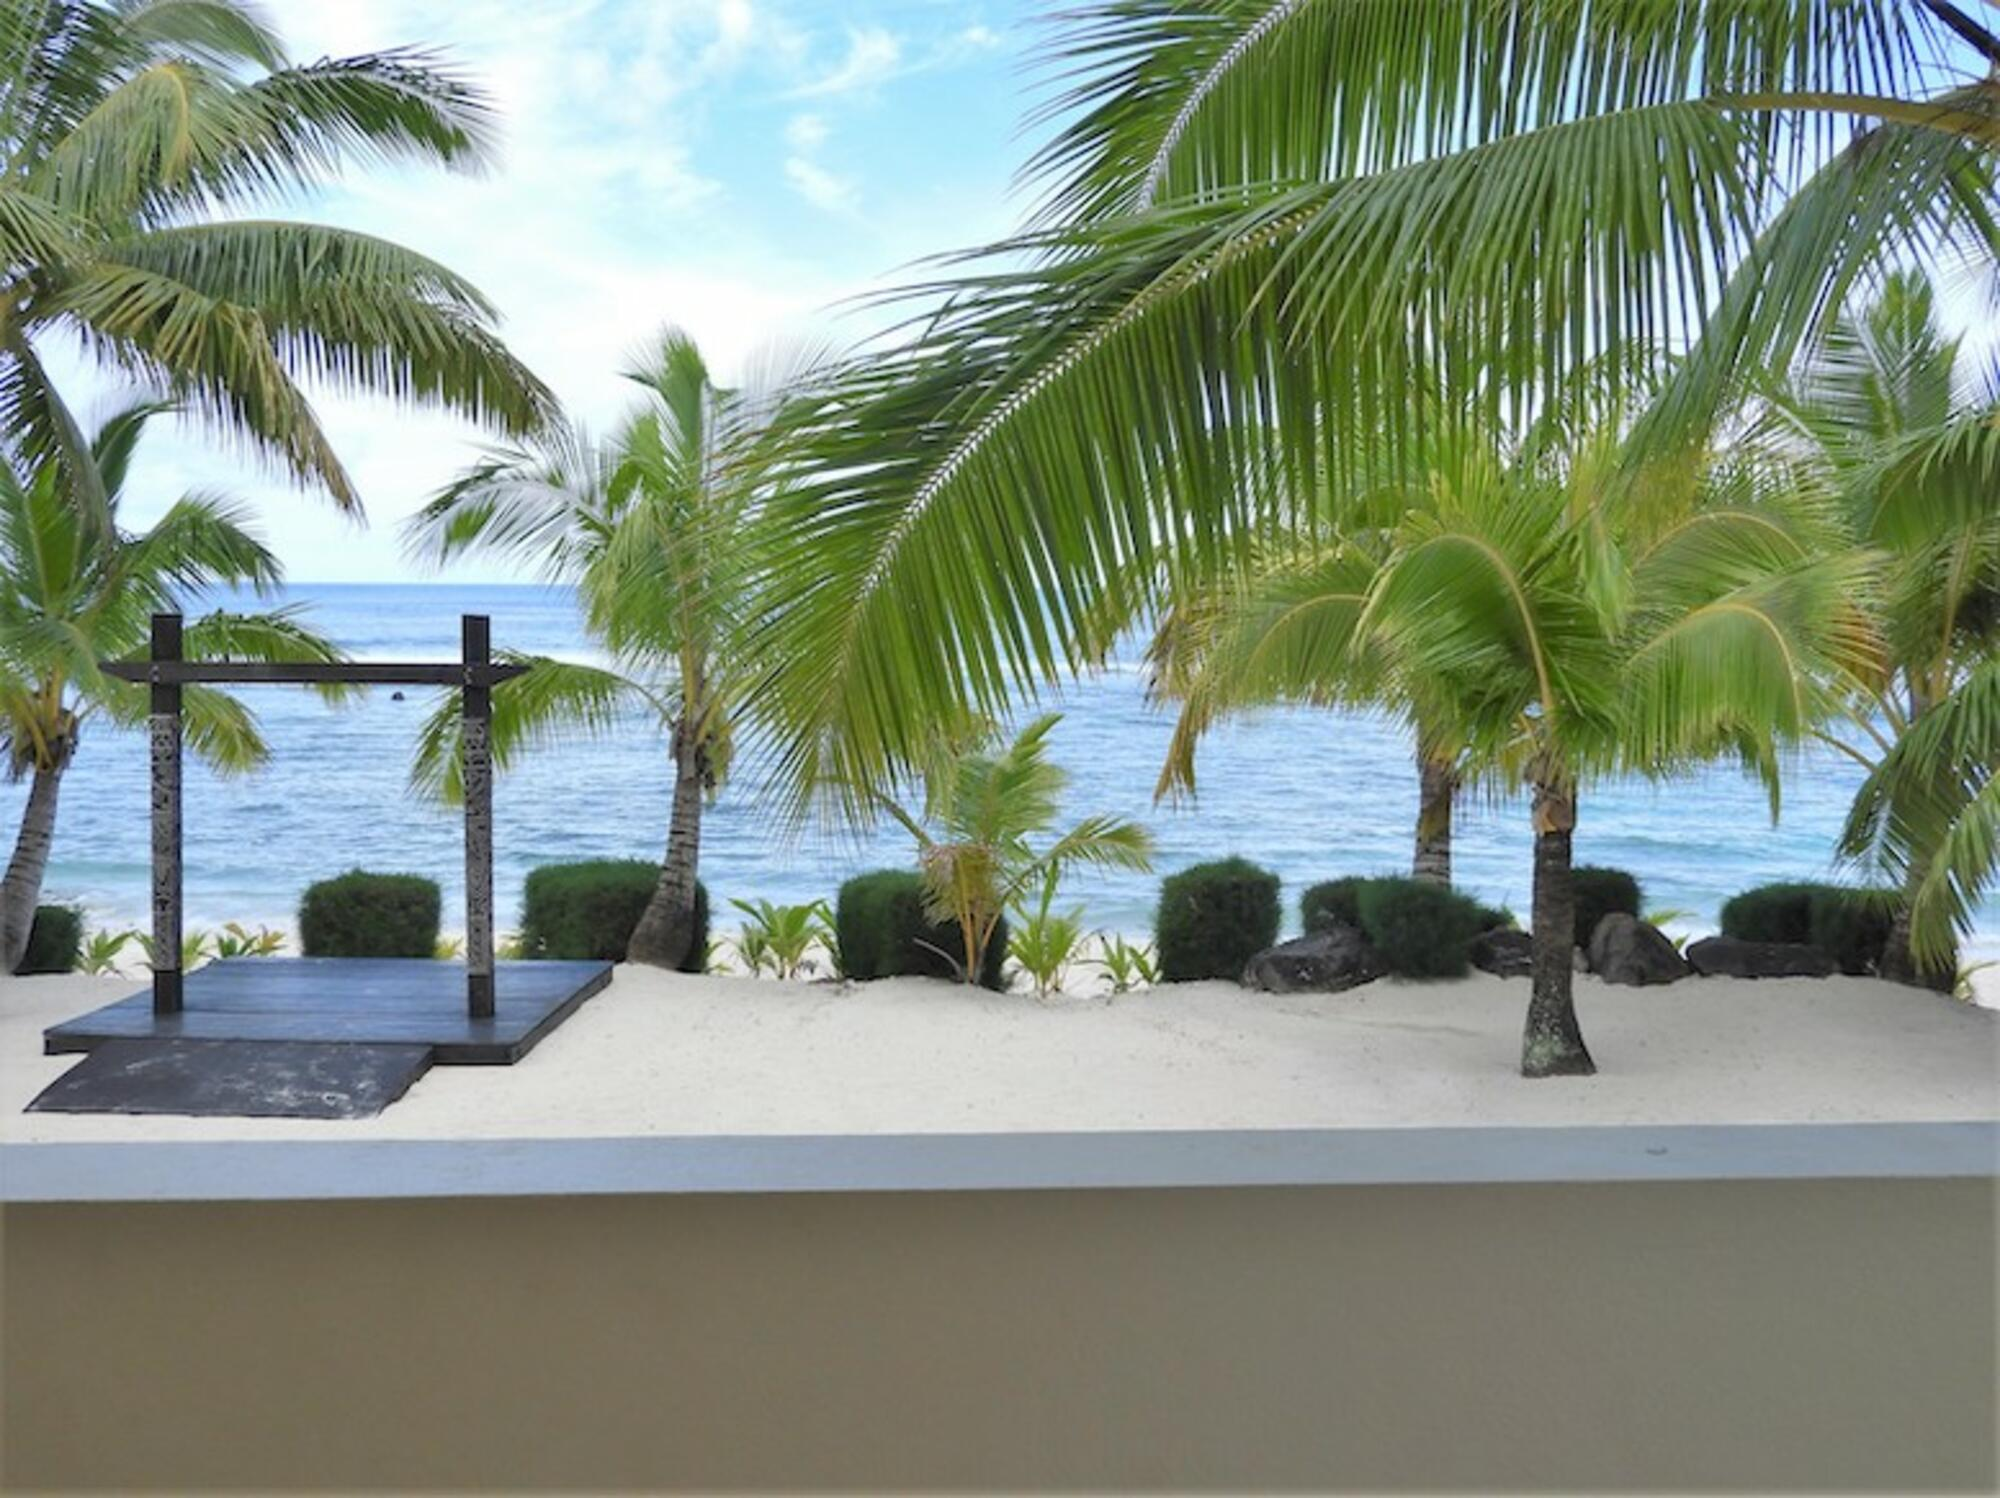 Views from Edgewater Resort and Spa's Beach Front Villa